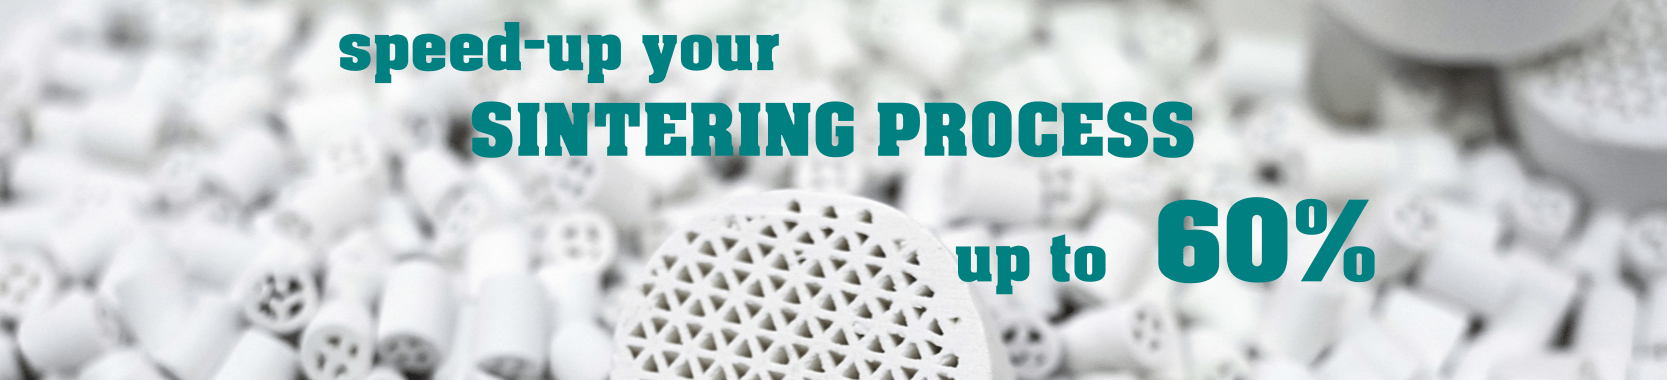 Speed up your sintering process up to 60%